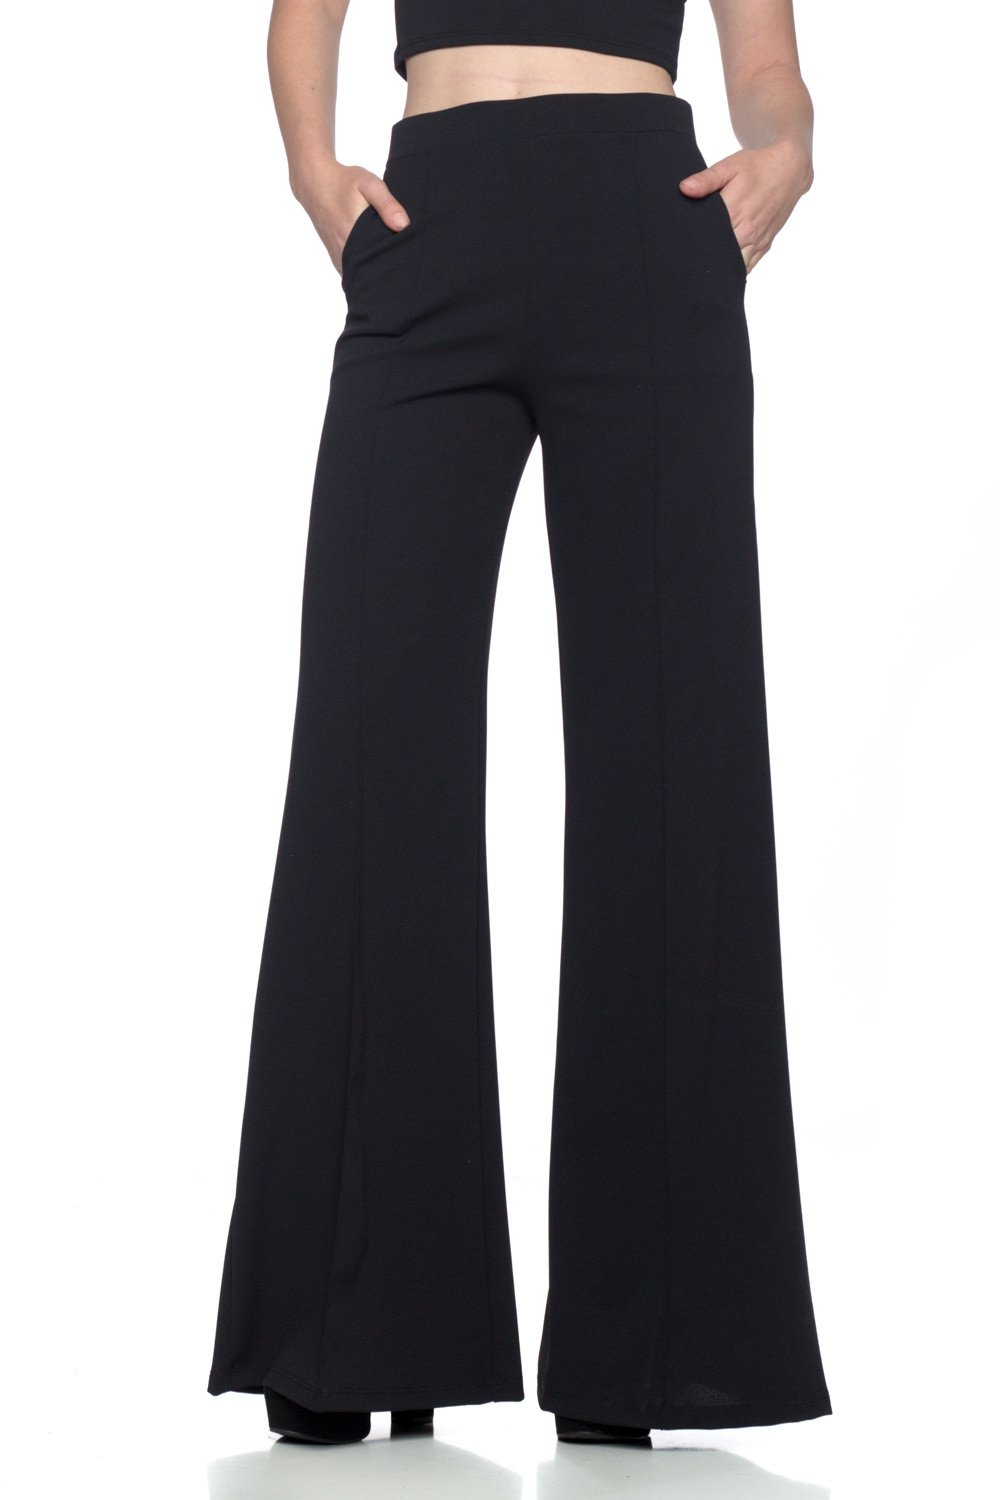 Women's J2 Love Flowing Palazzo Pants, Small, Black